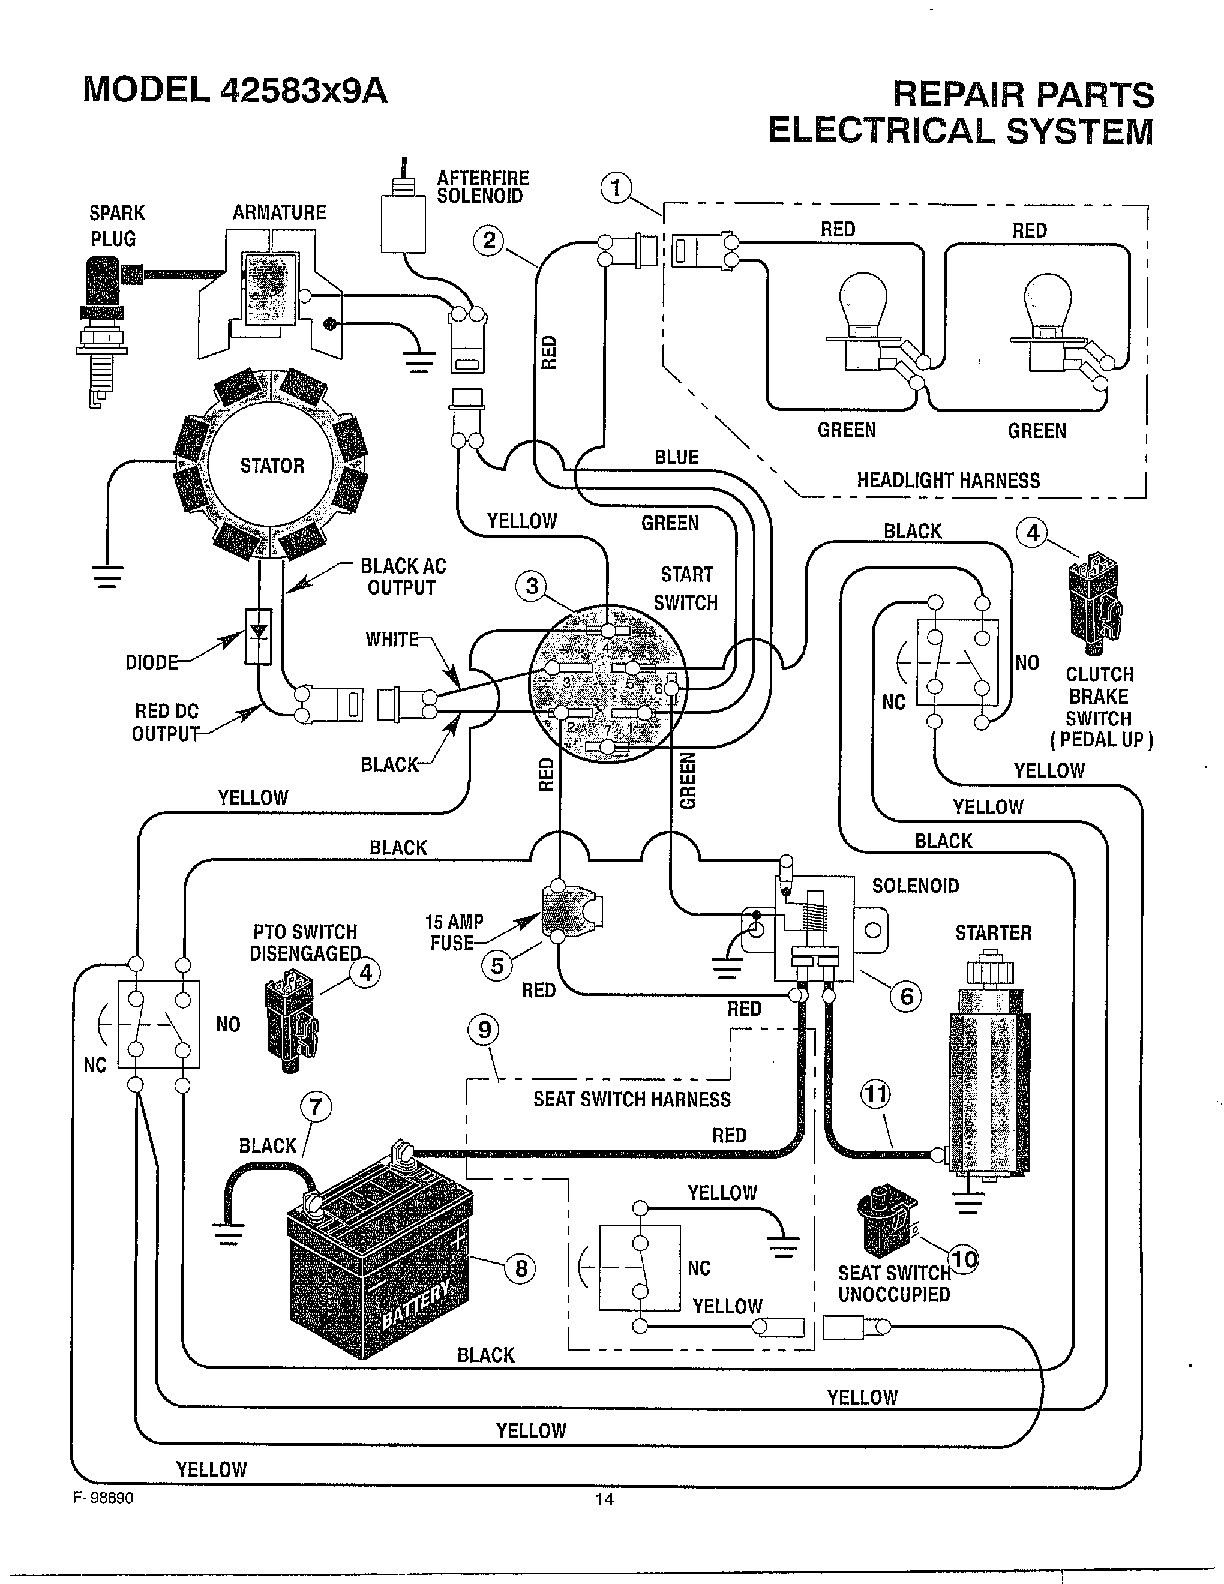 murray 10 30 wiring diagram rcl carter co uk \u2022murray 10 30 wiring diagram wiring diagram rh 18 ansolsolder co 5 hp briggs and stratton engine diagram toro riding mower wiring diagrams